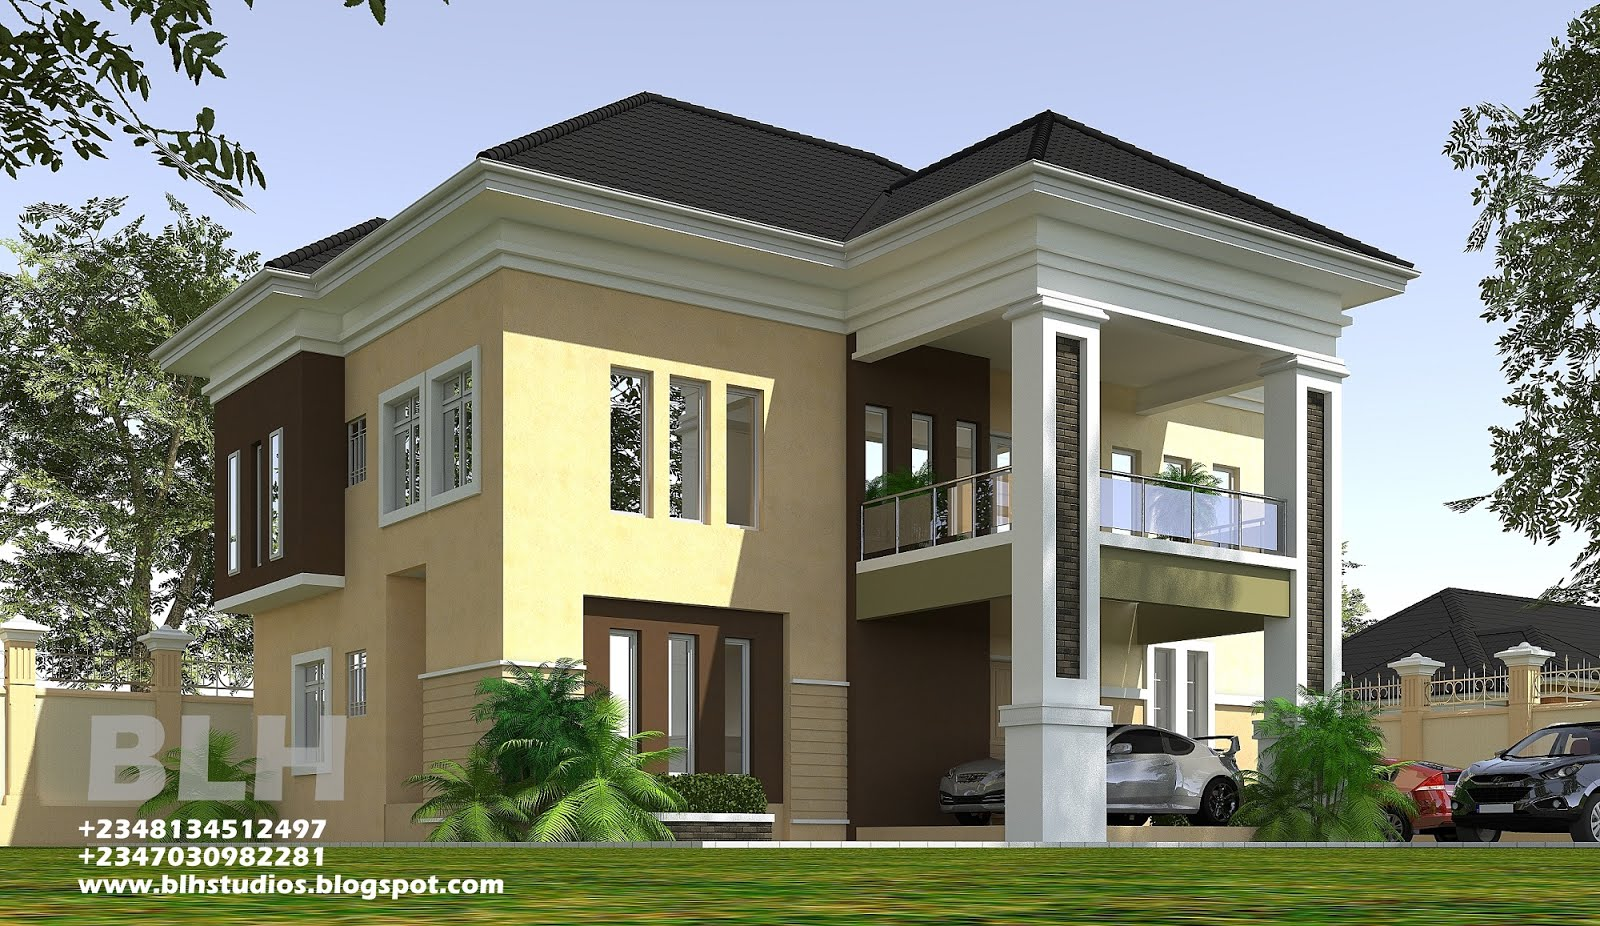 2 bhk bungalow designs home design